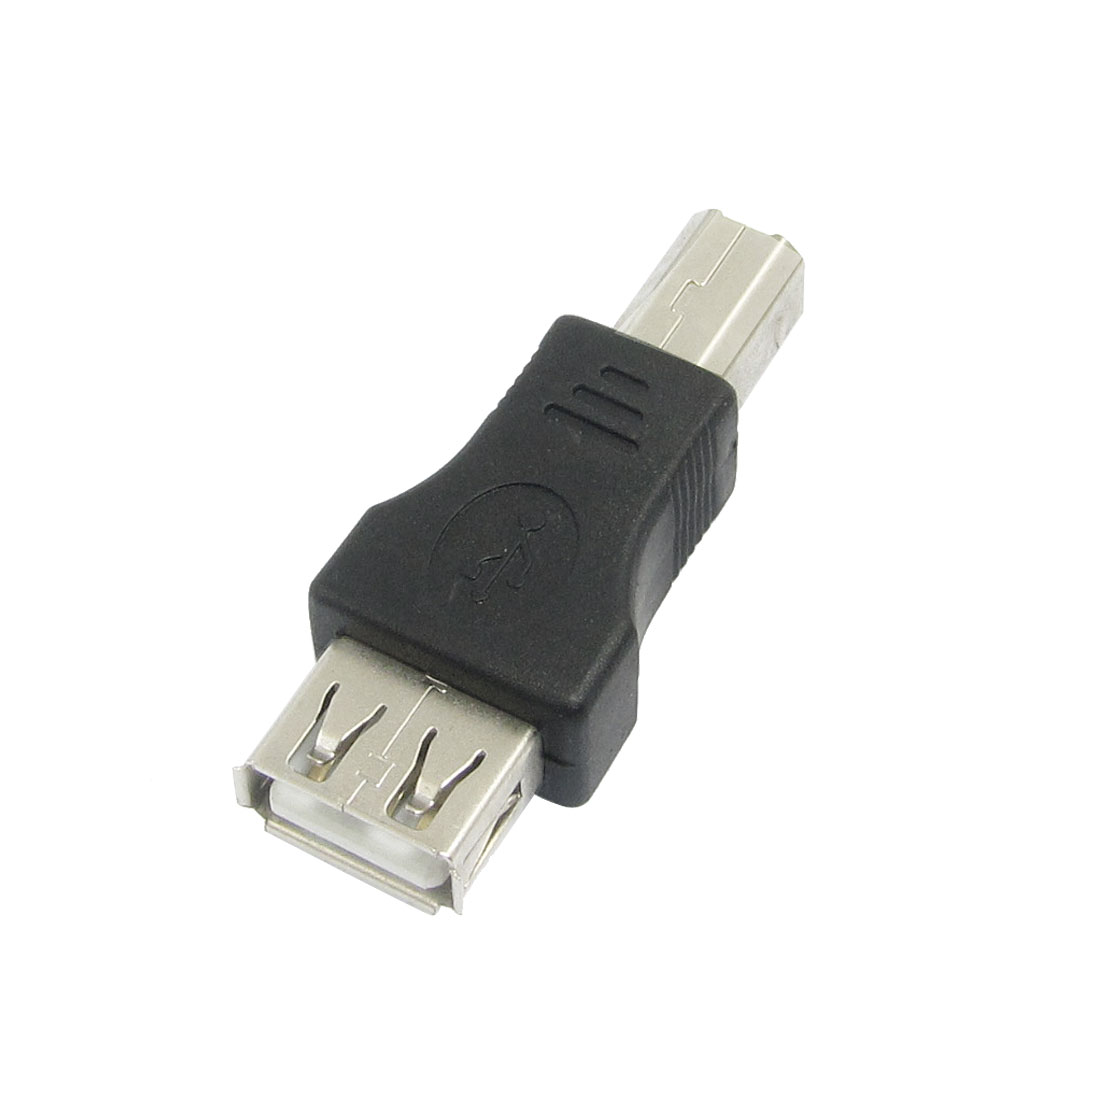 Printer USB A Female to USB Type B Male Adapter Black Silver Tone